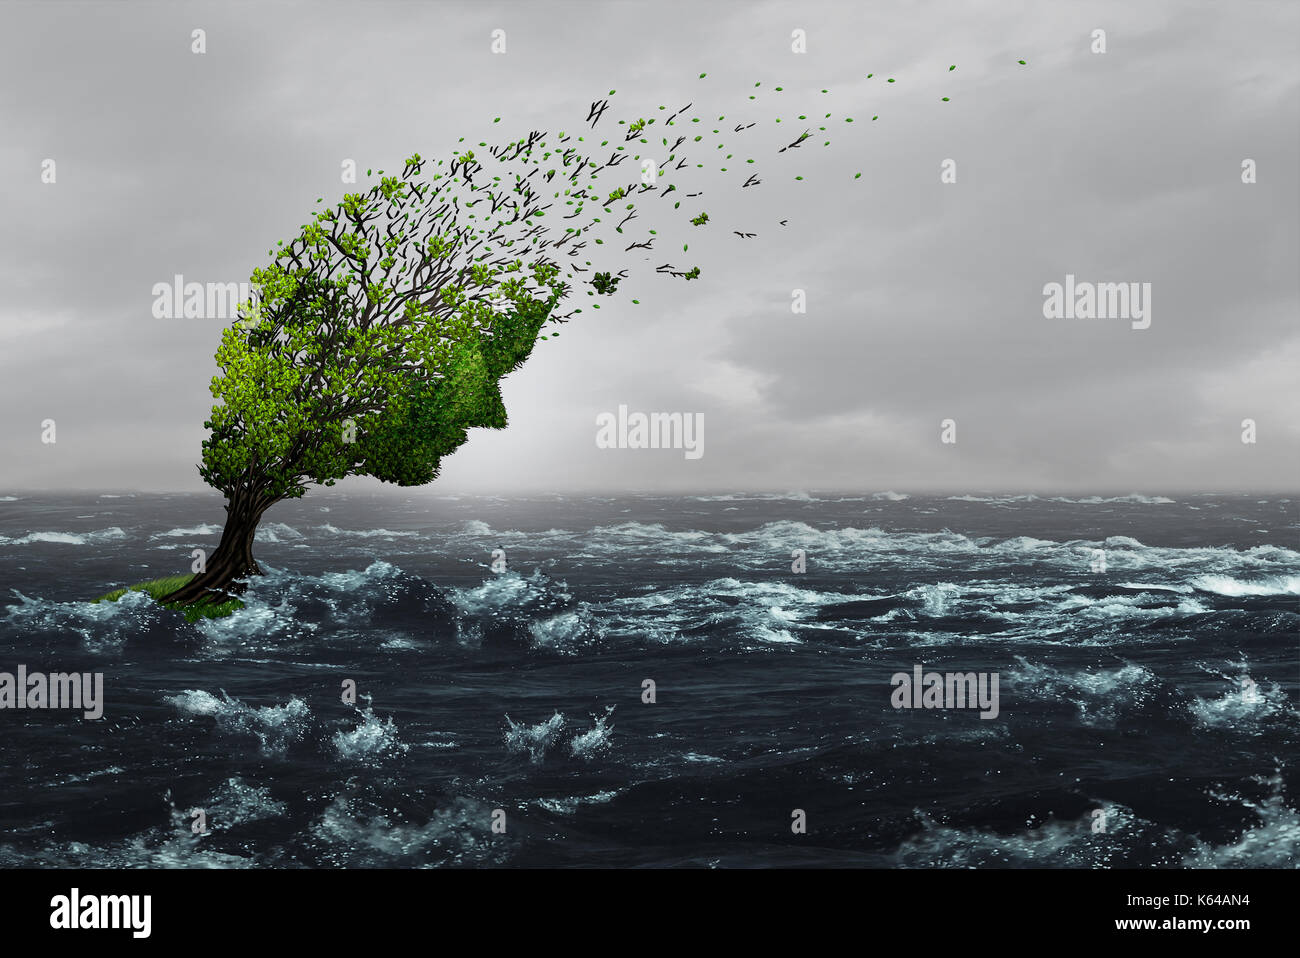 Surviving a storm concept as a battered stressed tree blown by violent winds in flood waters as an anxiety or abuse metaphor to withstand. - Stock Image